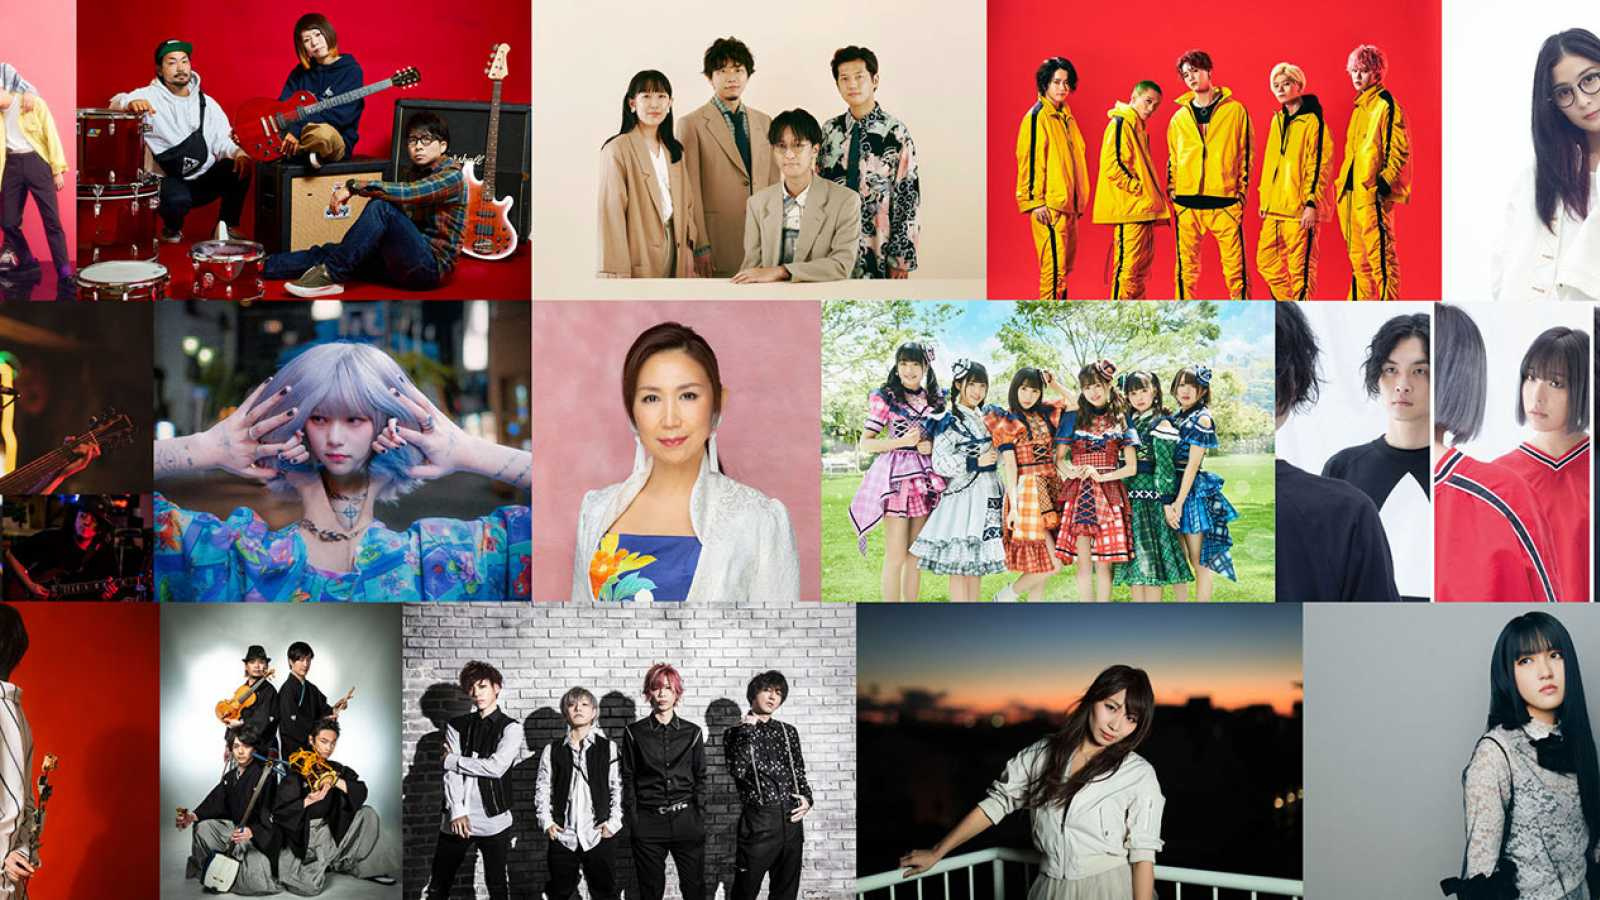 Tokyo International Music Market Announces Free Worldwide Live Stream of Three-Day Music Showcase © TIMM. All rights reserved.